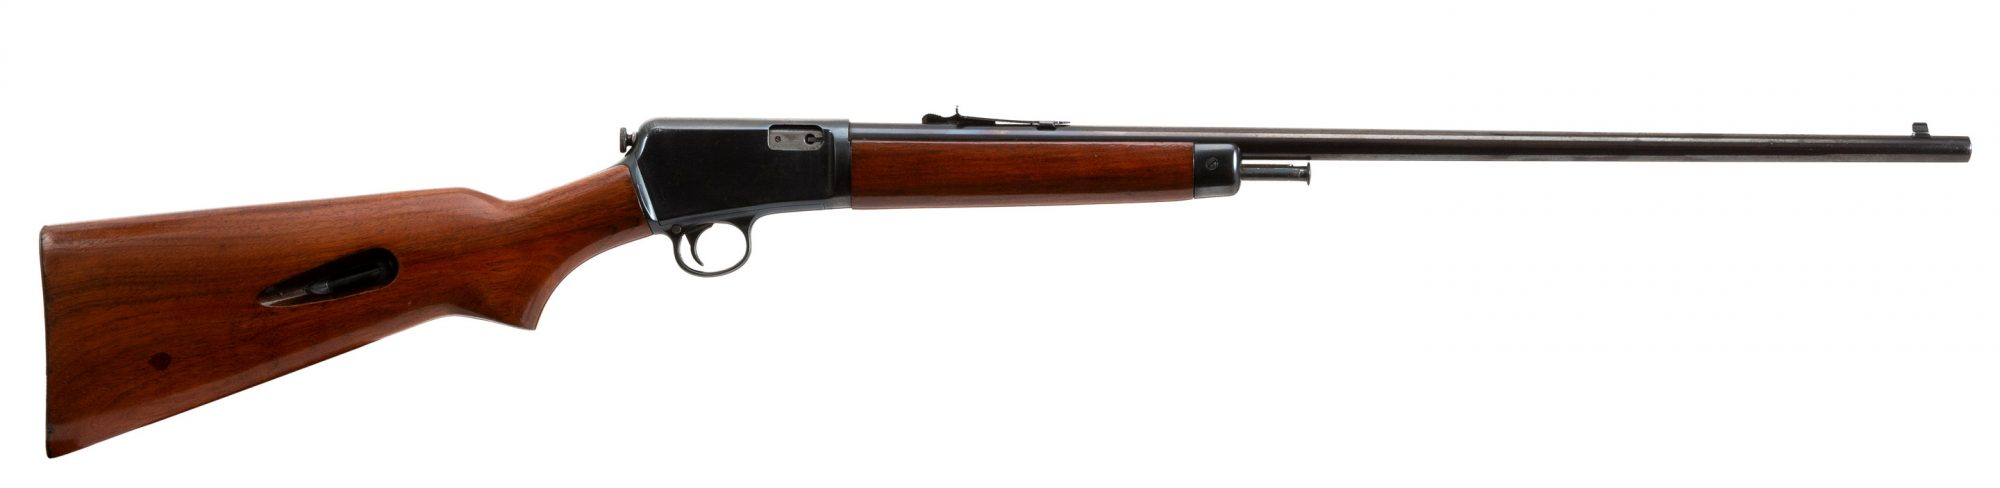 Photo of a pre-owned Winchester Model 63 from 1947, for sale by Turnbull Restoration of Bloomfield, NY